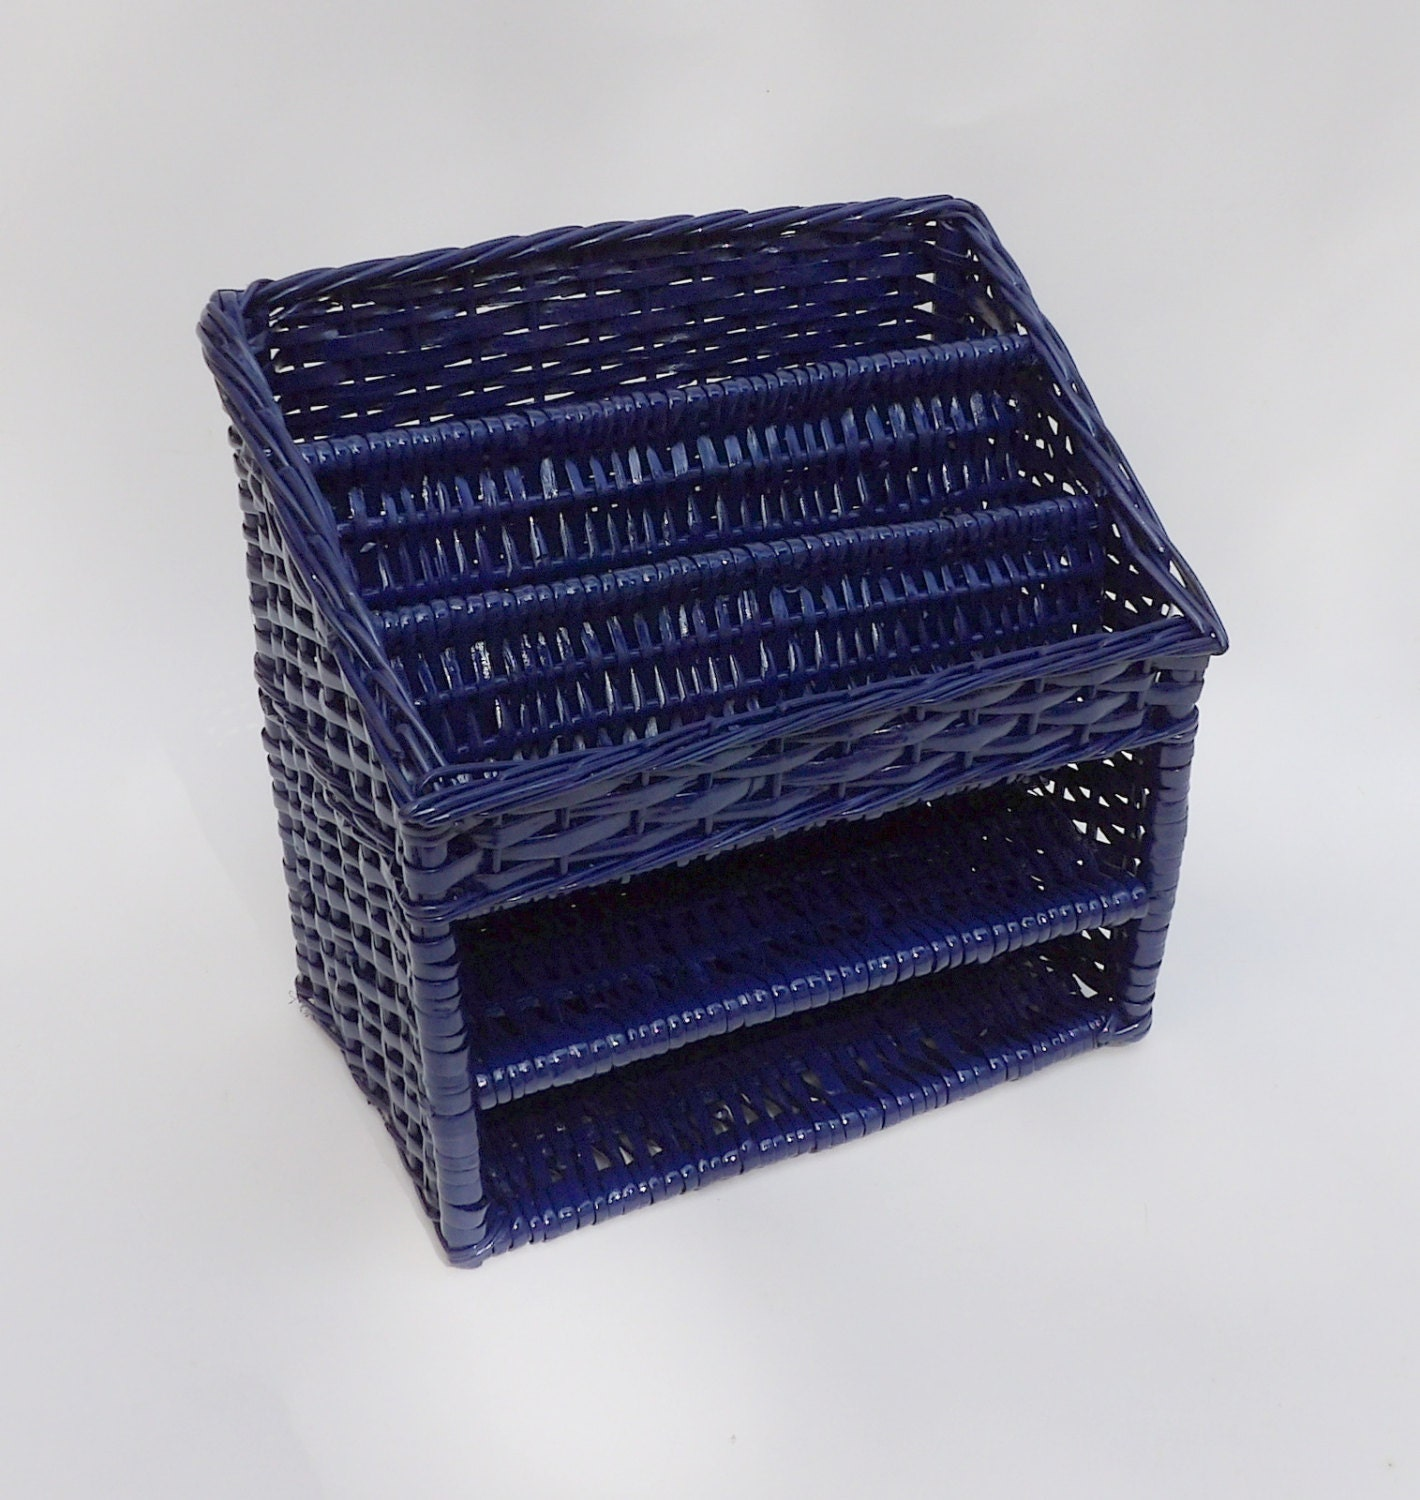 Office desk organizer mail holder sorter by - Desk organizer sorter ...